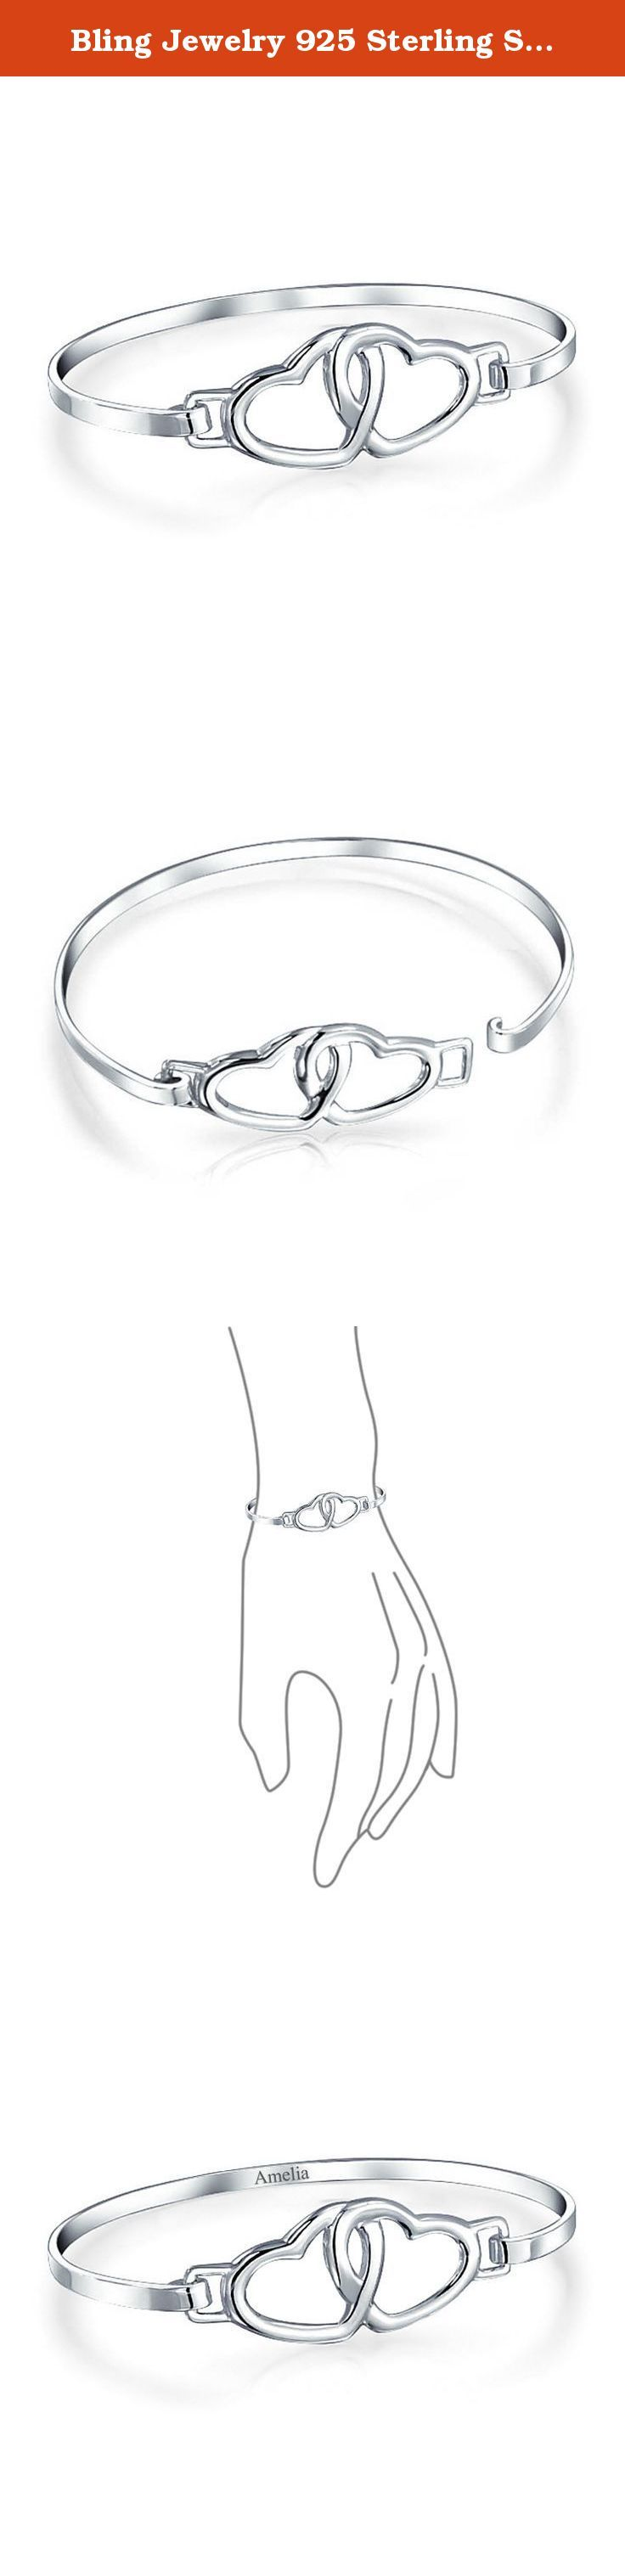 Bling Jewelry 925 Sterling Silver Open Double Heart Love Bangle Bracelet 7.5in Free Engraving. Our 925 sterling silver open double heart love bangle bracelet will put a smile on her face and brighten her day. The engravable bracelet opens on the top of the entwined hearts with an easy hook and loop clasp. Make this bracelet more meaningful by adding some custom engraving to this piece of personalized jewelry. These engraved bracelets are ideal Valentines Day gifts and birthday presents.